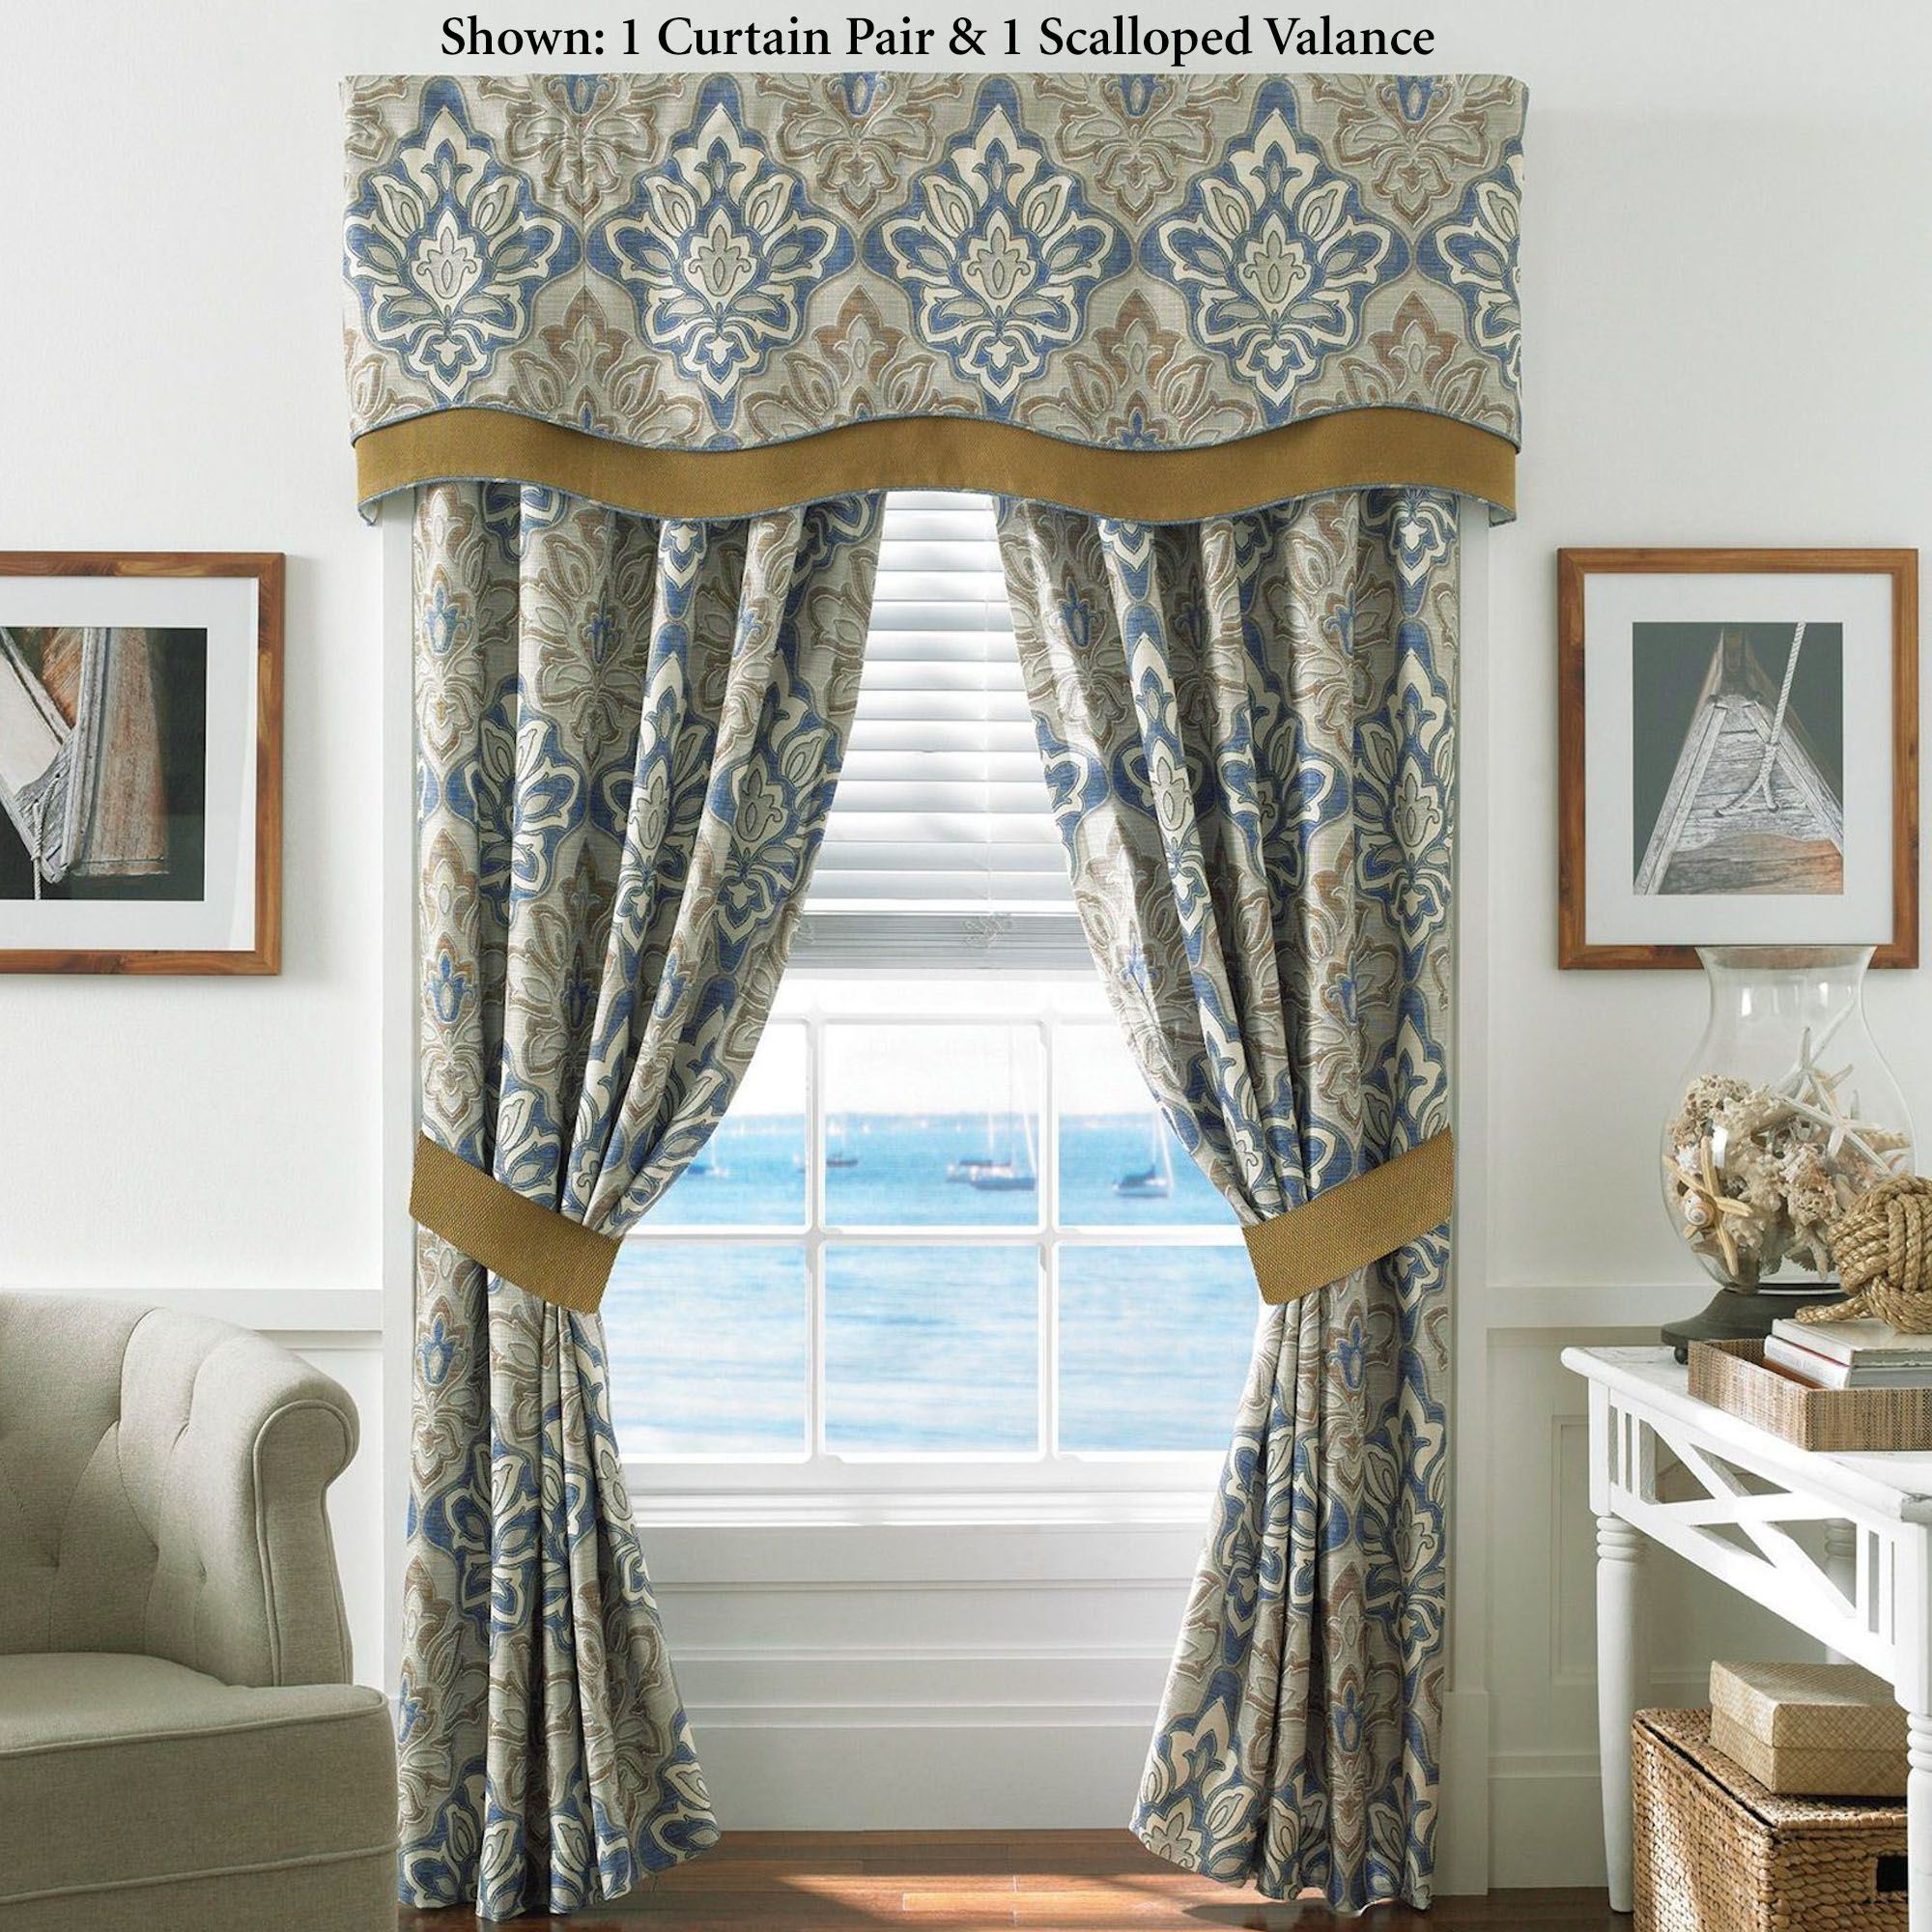 chapel p beige by curtain treatment window tailored croscill panel from seashore hill embroidered coastal x valance